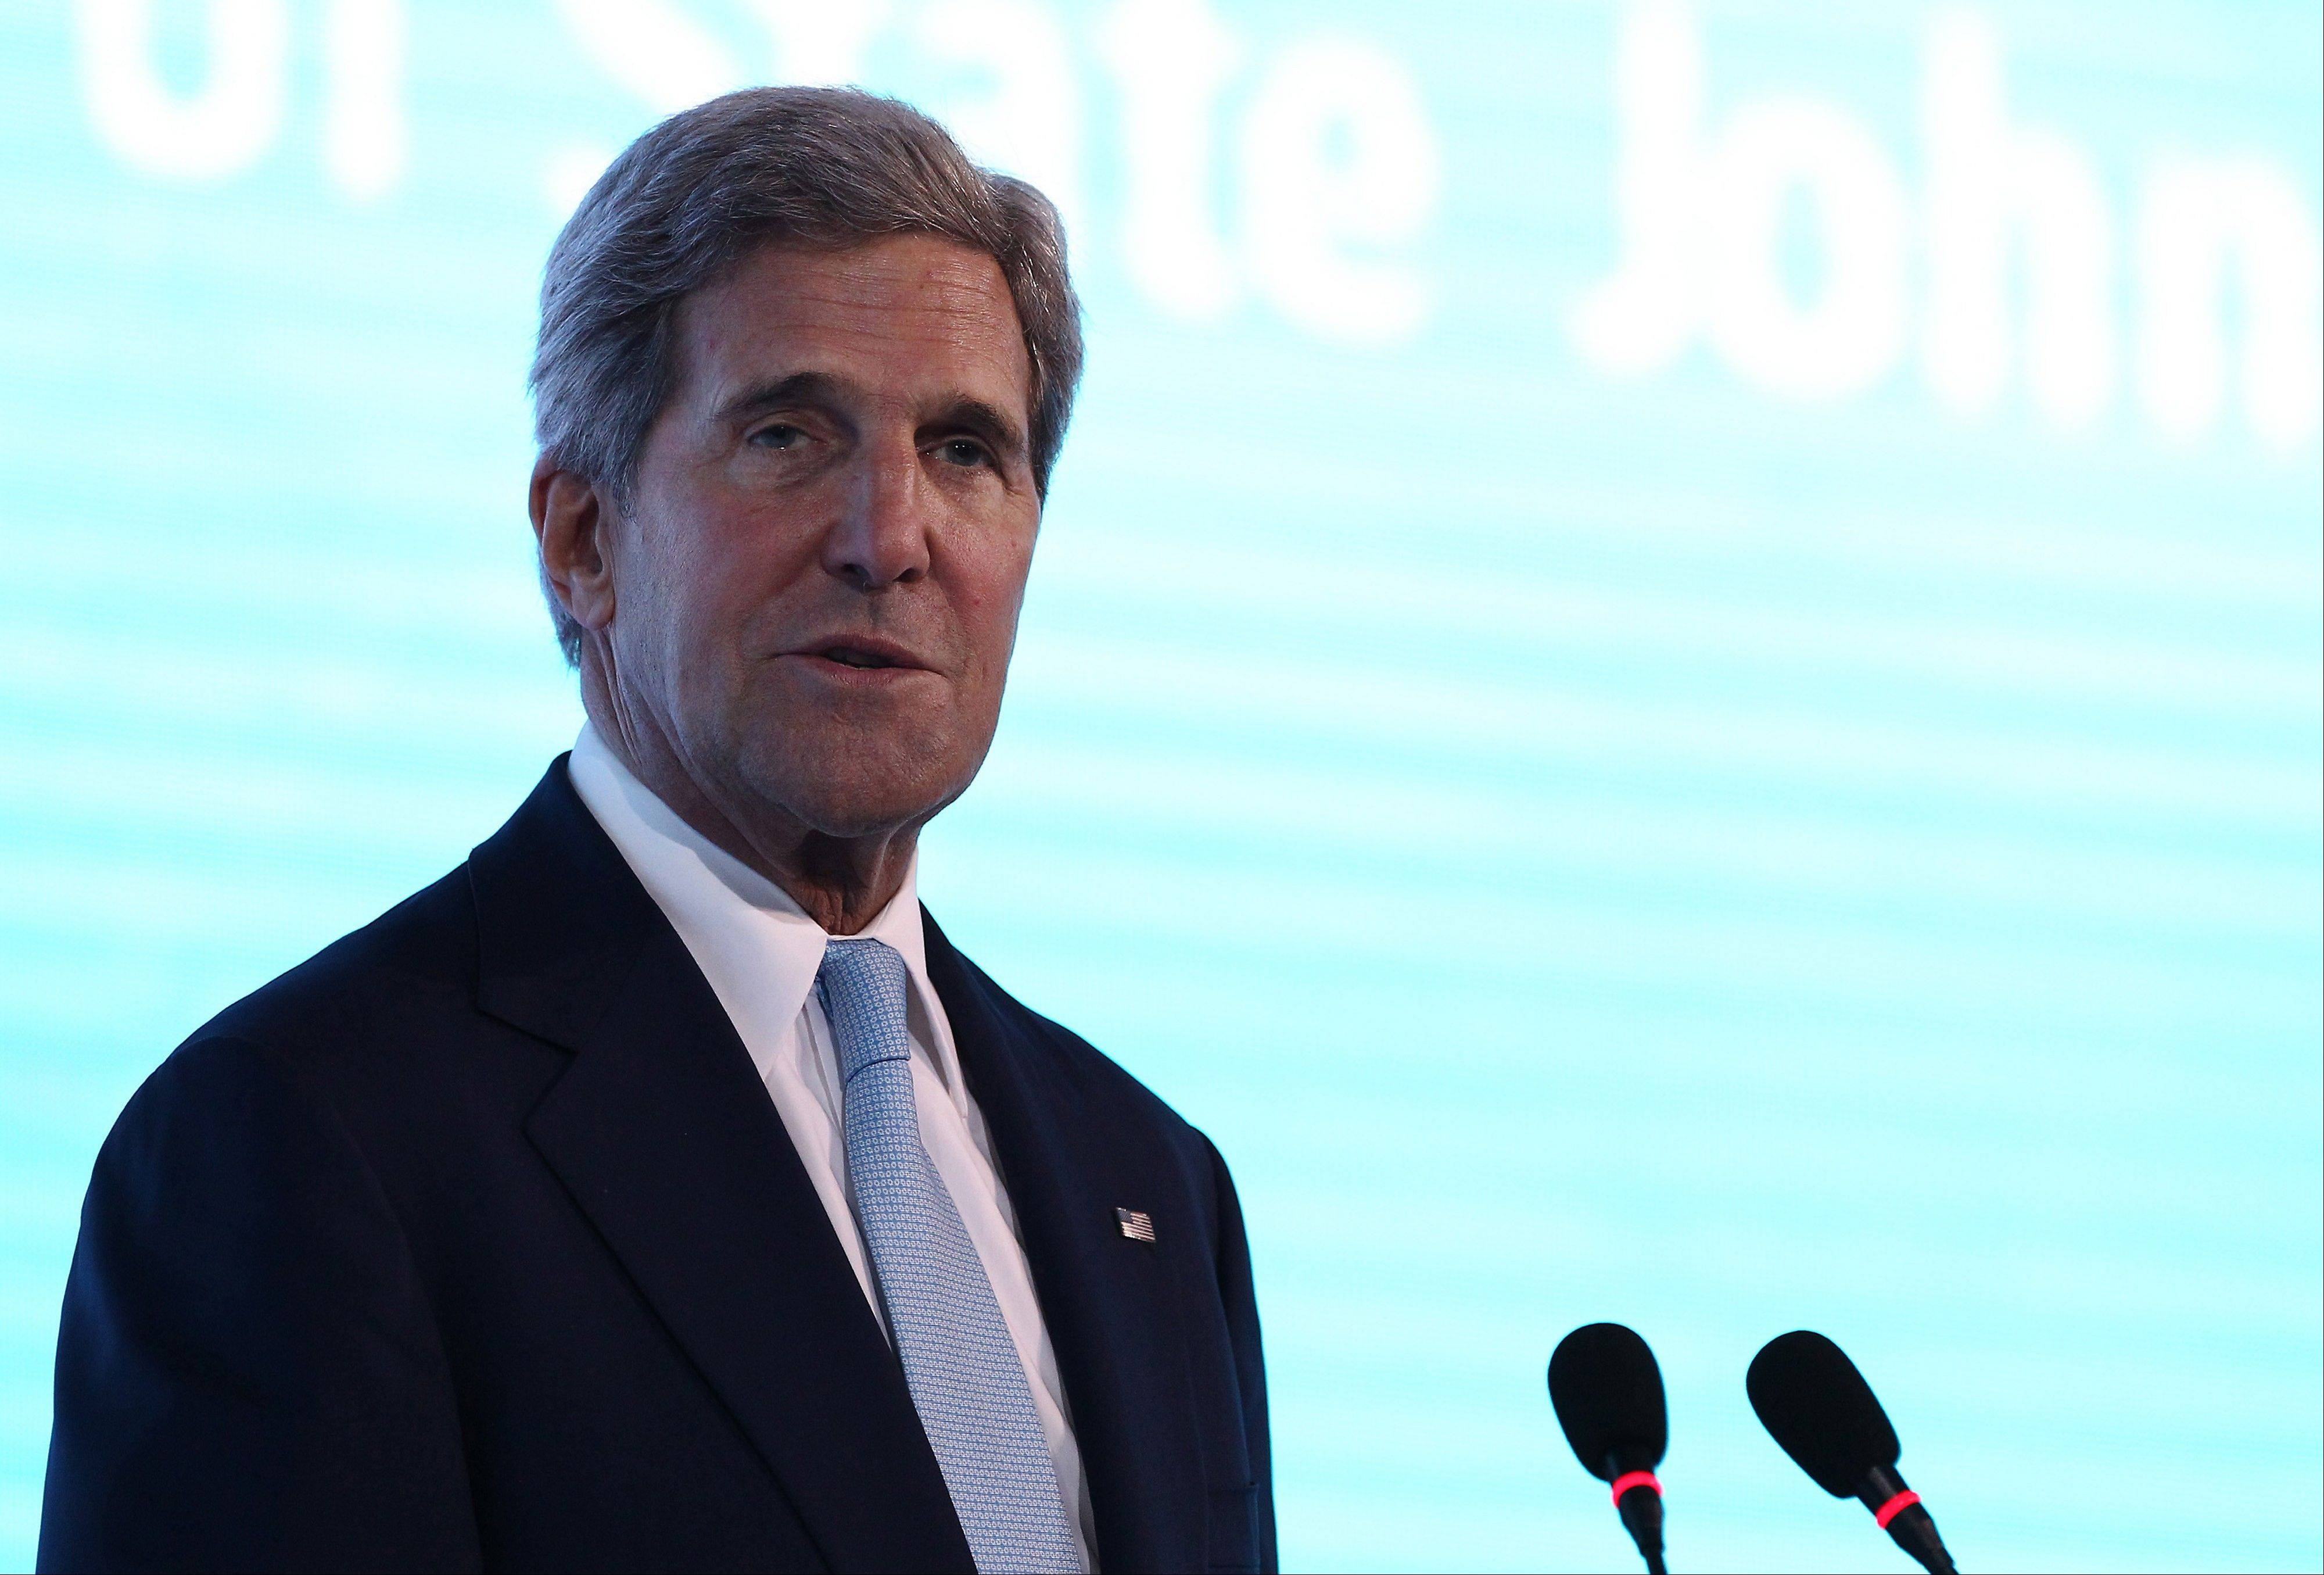 John Kerry, U.S. secretary of state, speaks at the Asia-Pacific Economic Cooperation (APEC) CEO Summit in Nusa Dua, Bali, Indonesia, Monday.